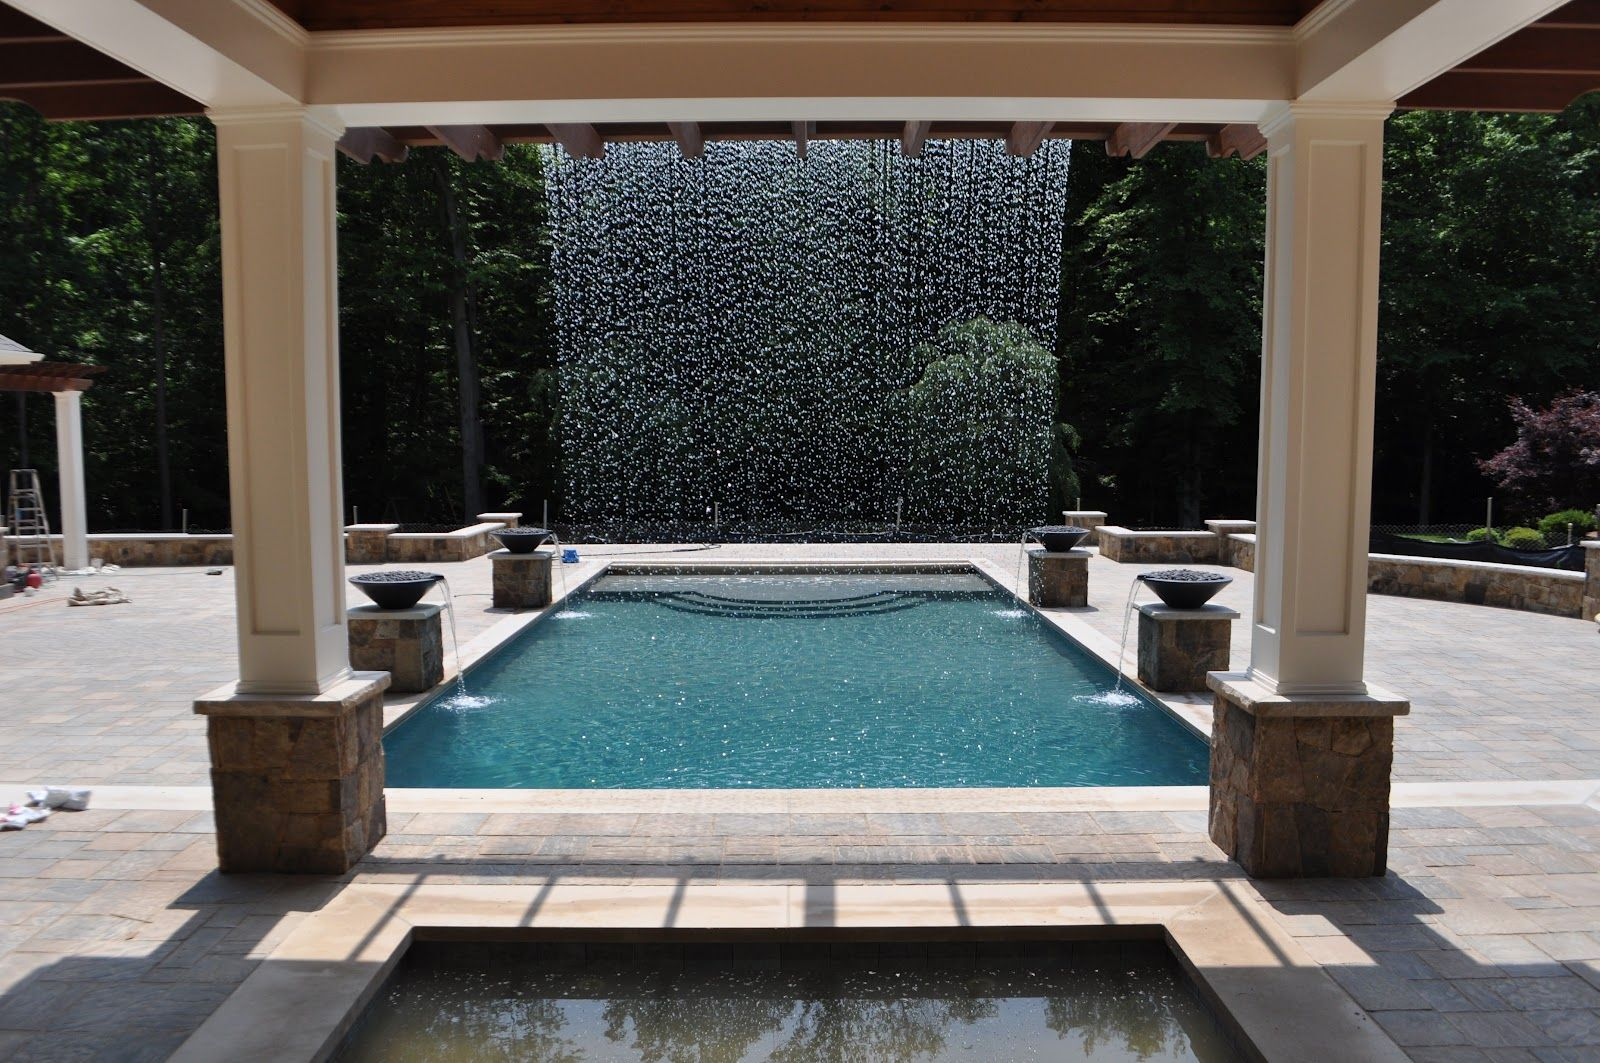 Landscape Architectural Design Rain Curtain Home Fountain Residential Pool Backyard Patio Designs